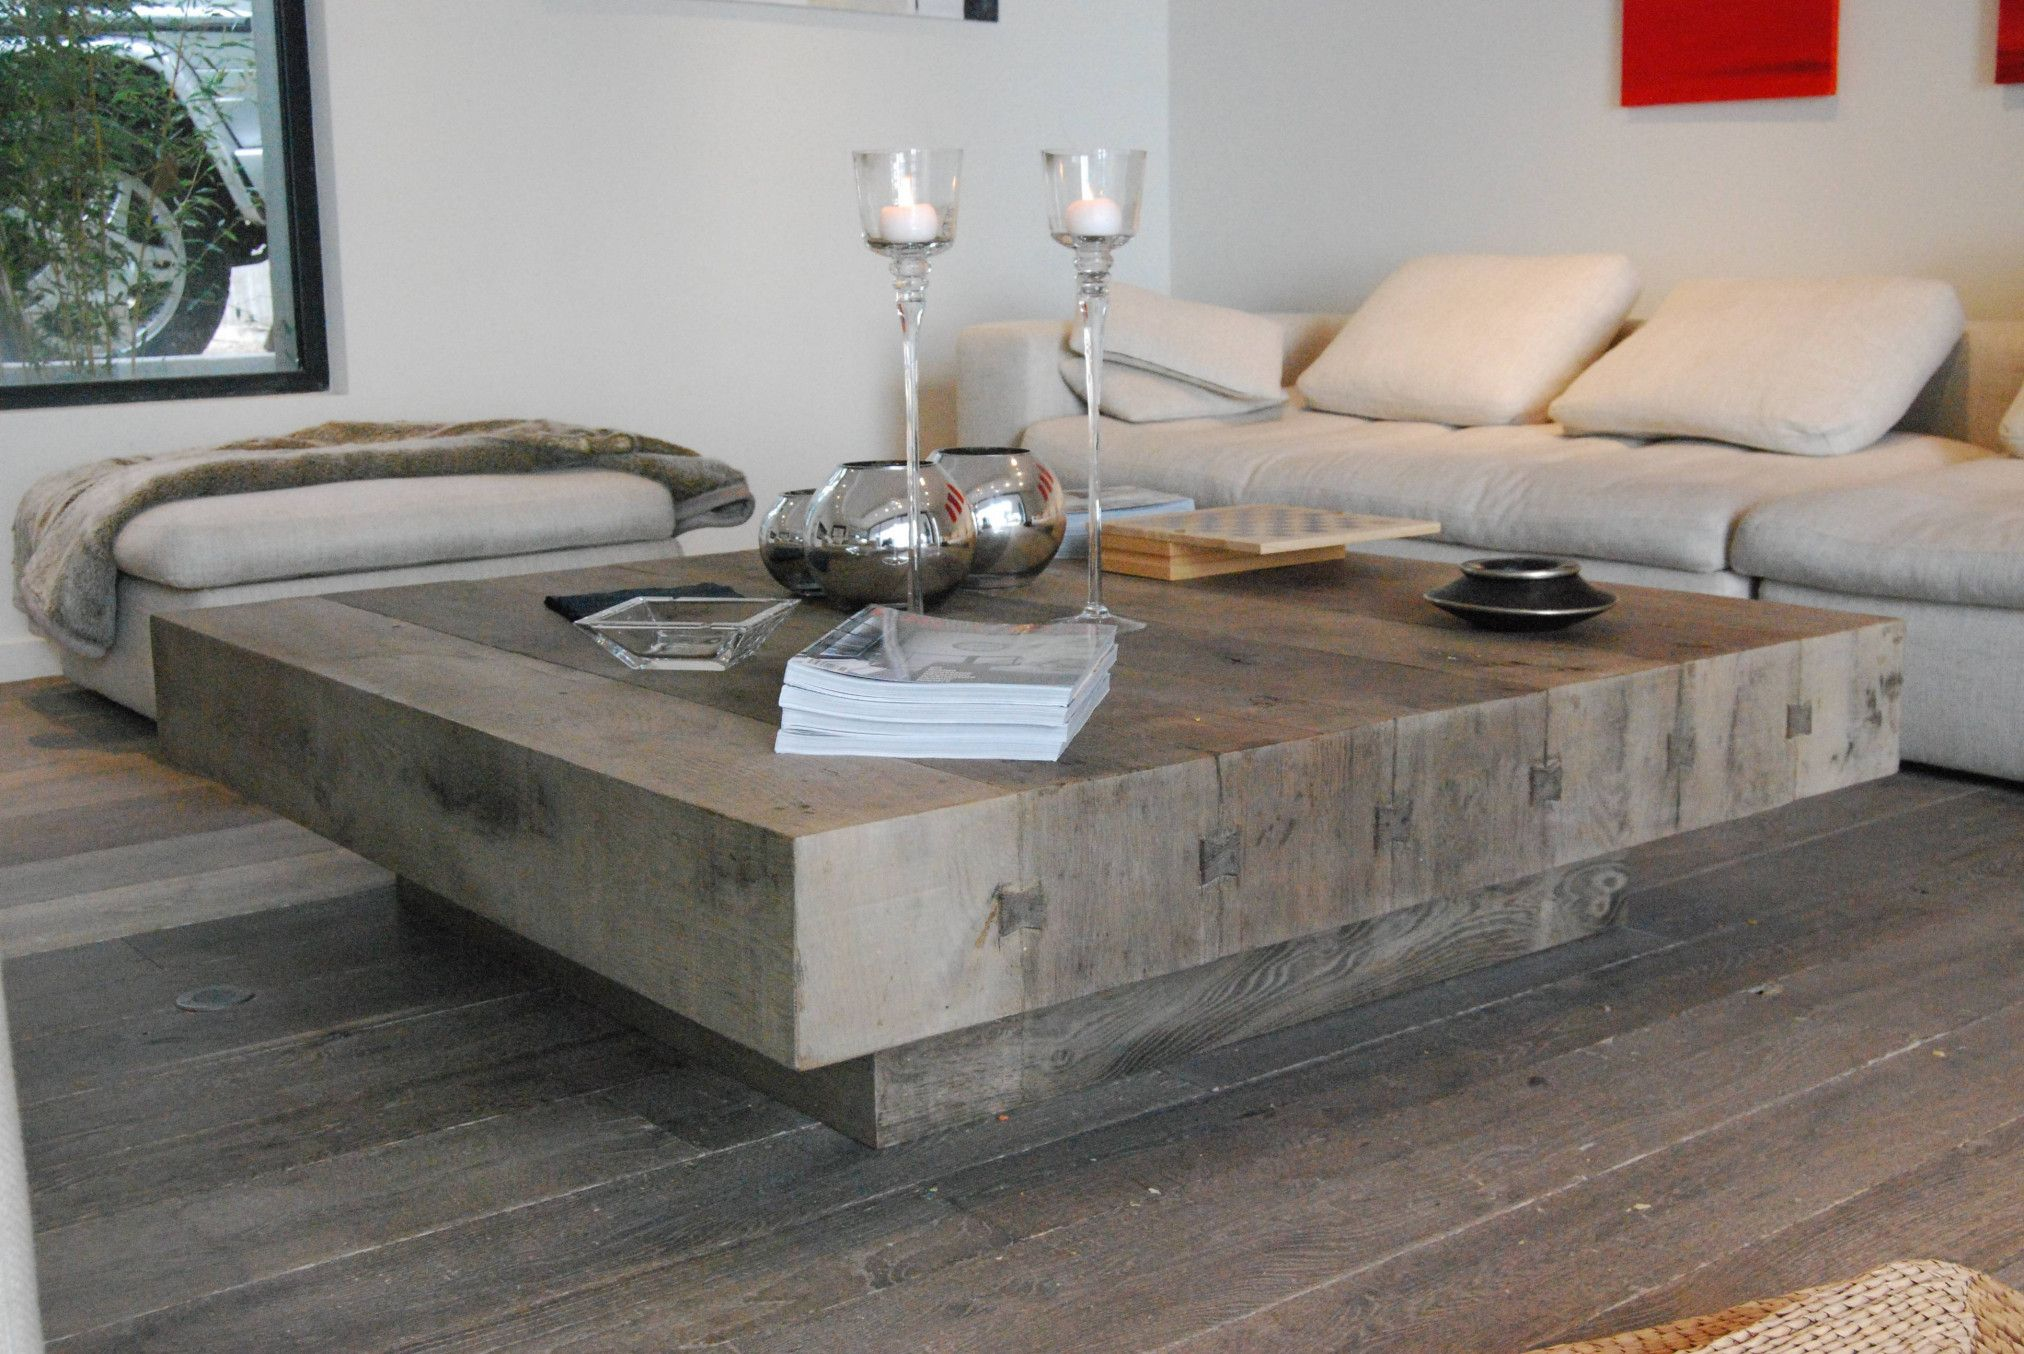 2018 Extra Large Square Coffee Table Cool Furniture Ideas Check